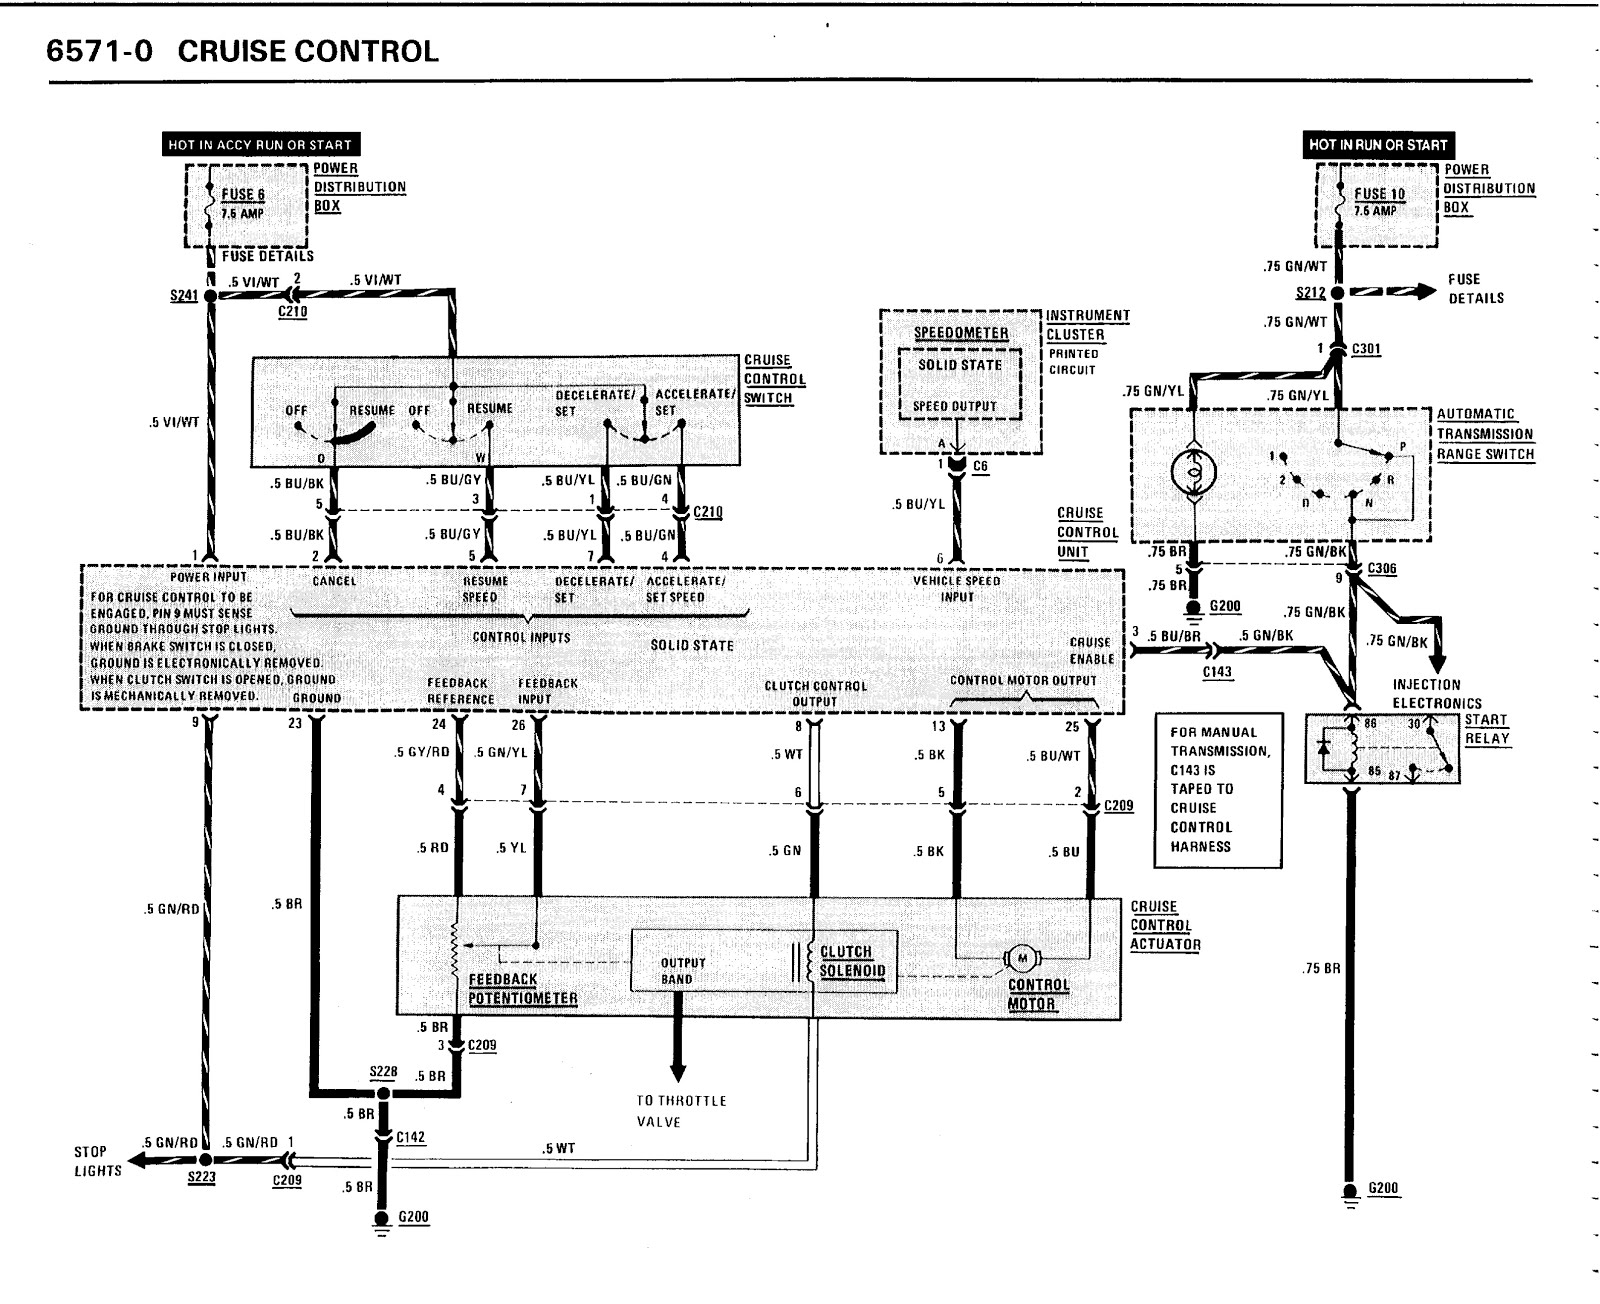 bmw cruise control diagram diagram data schema exp bmw e30 cruise control wiring diagram bmw cruise control diagram [ 1600 x 1304 Pixel ]